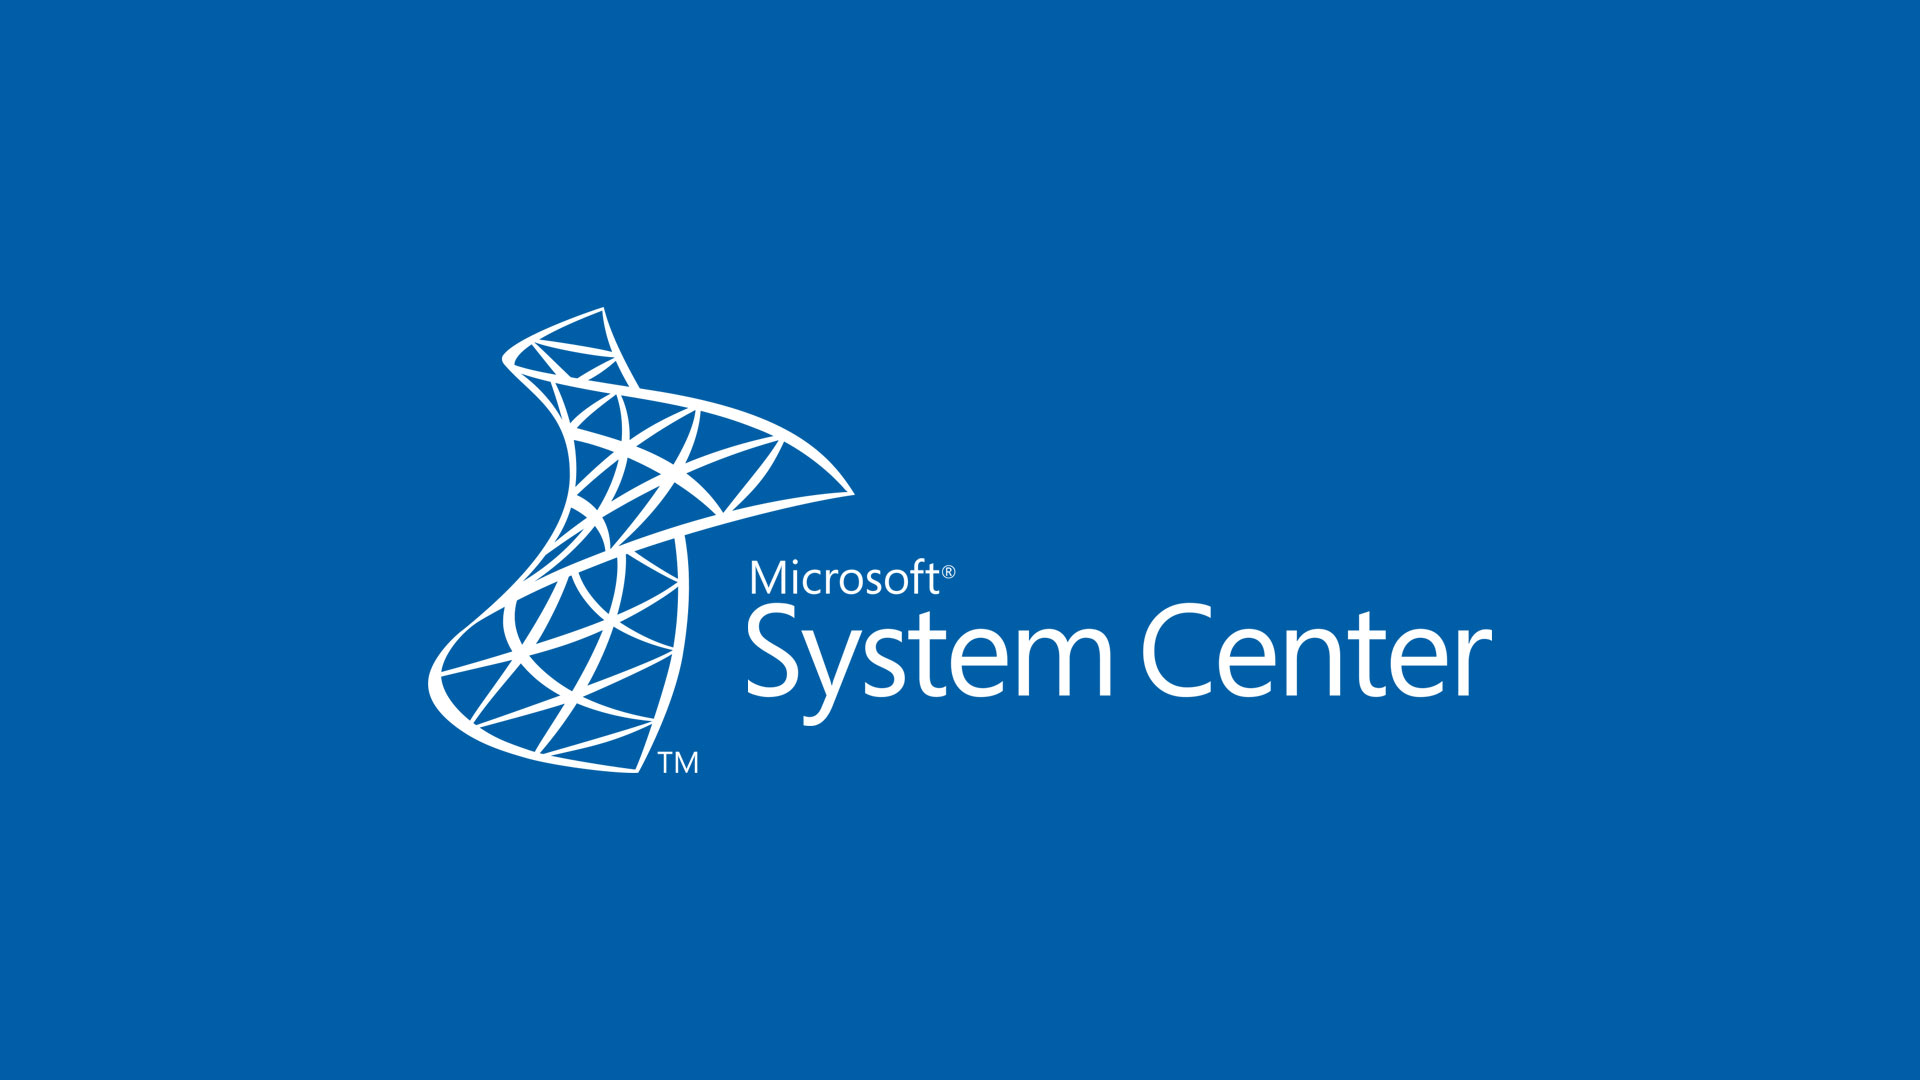 Microsoft System Center